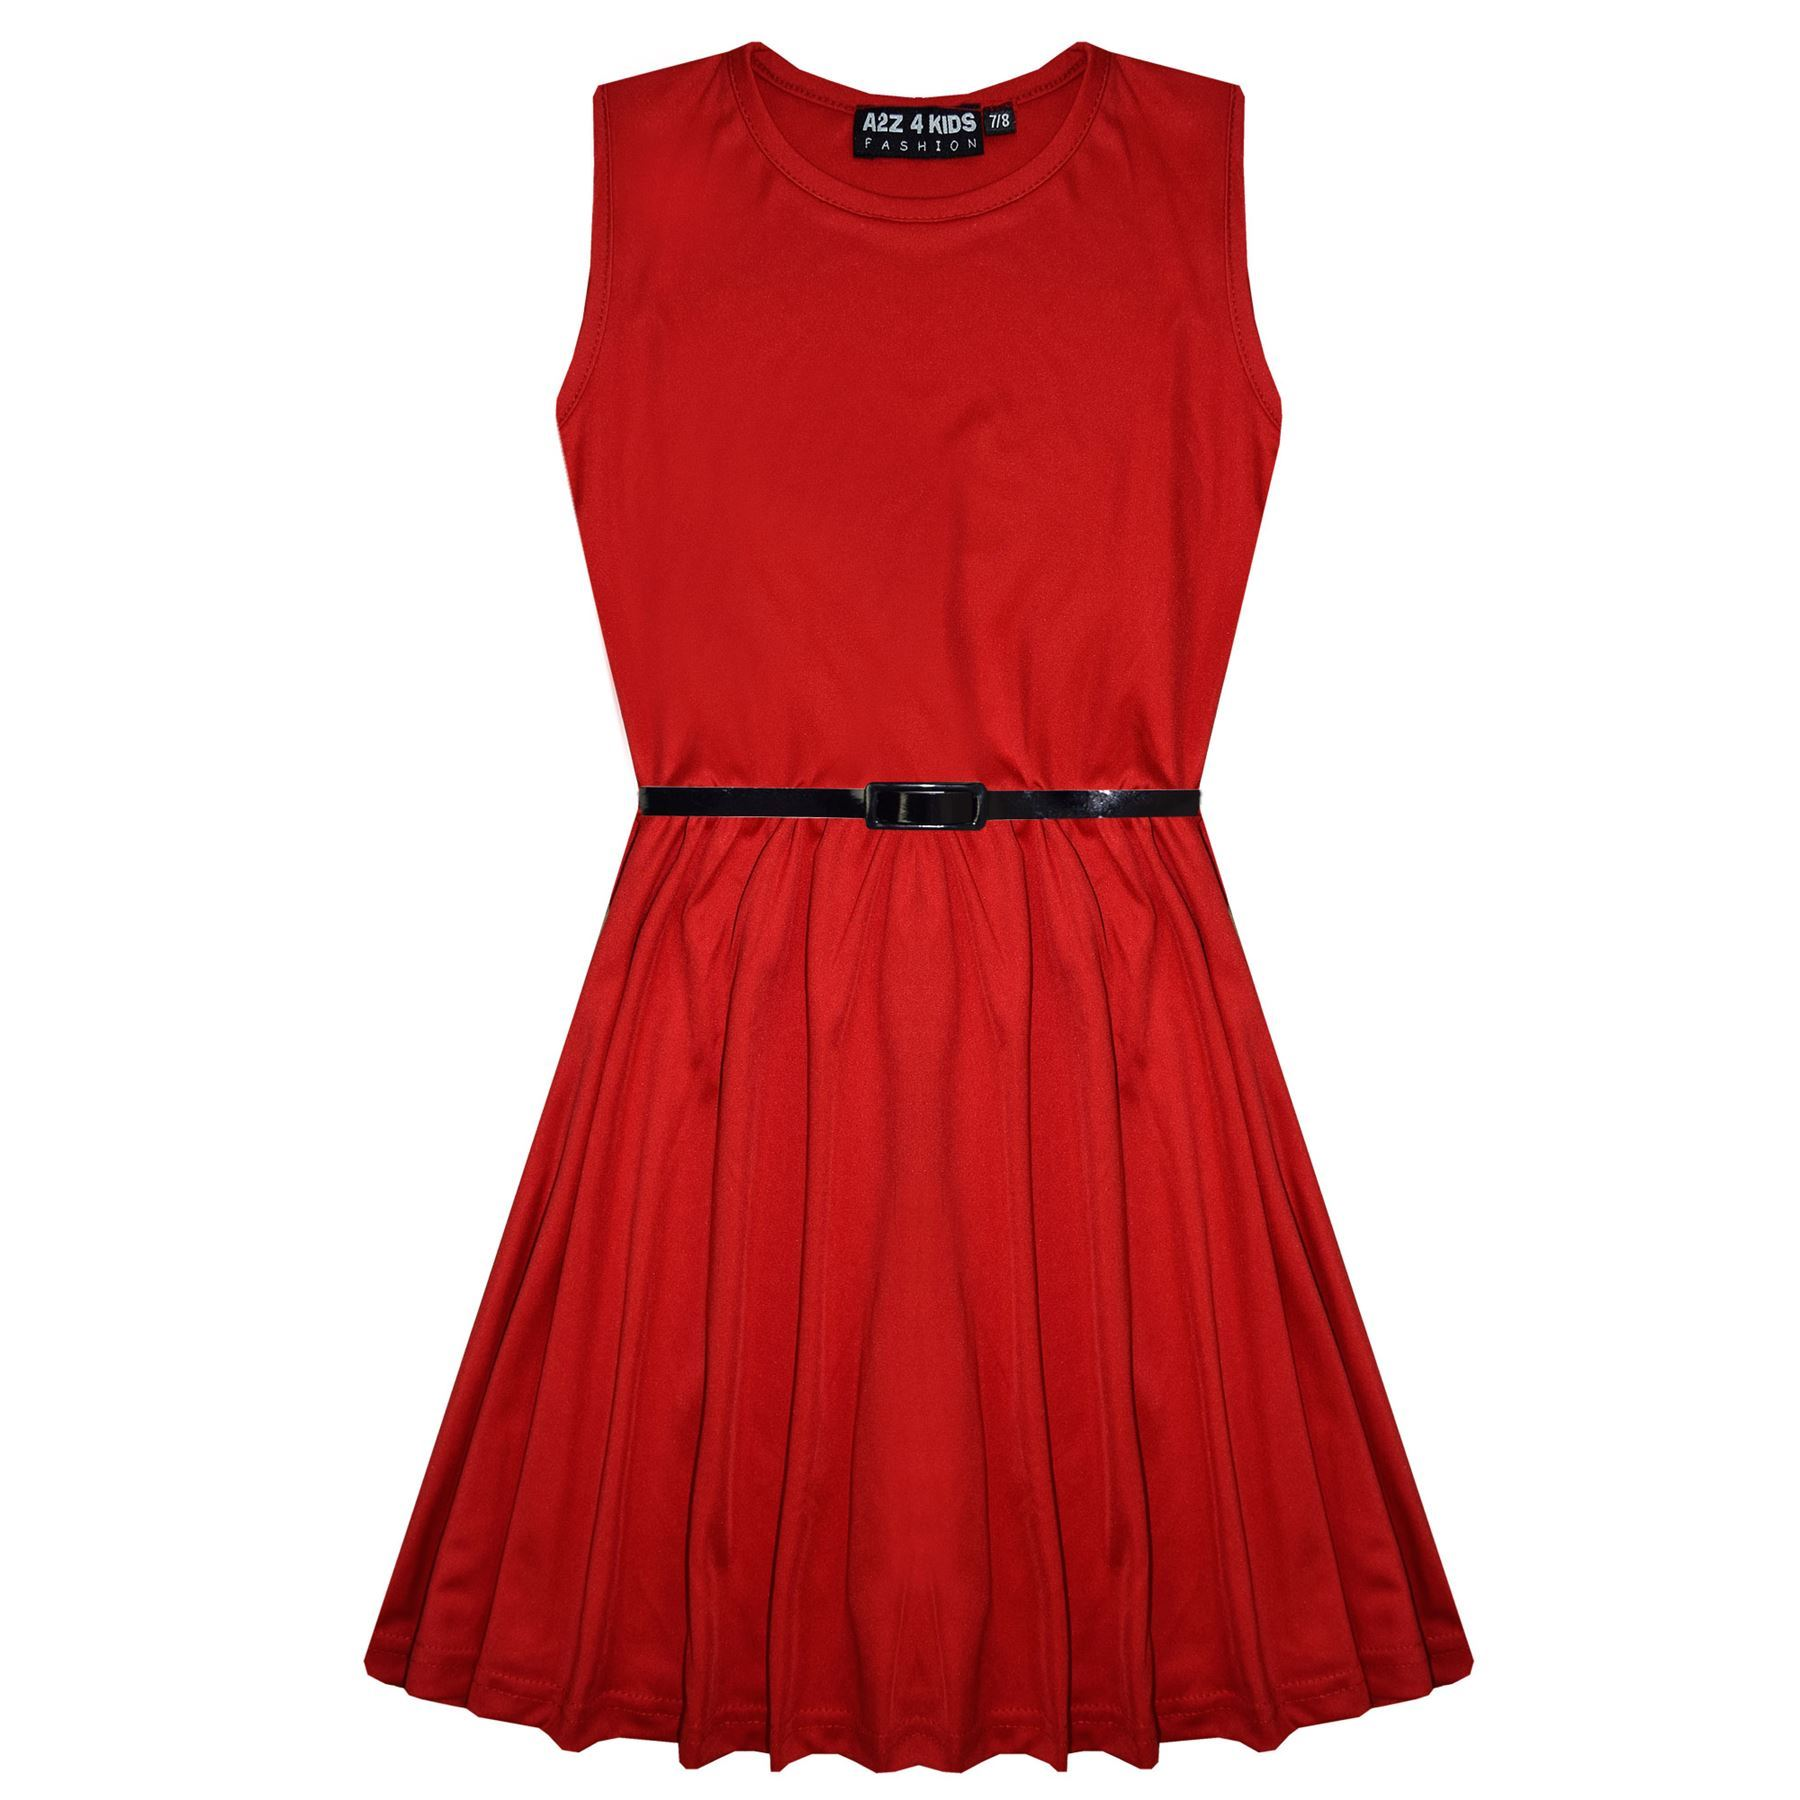 Girls-Skater-Dress-Kids-Party-Dresses-With-Free-Belt-5-6-7-8-9-10-11-12-13-Years thumbnail 66